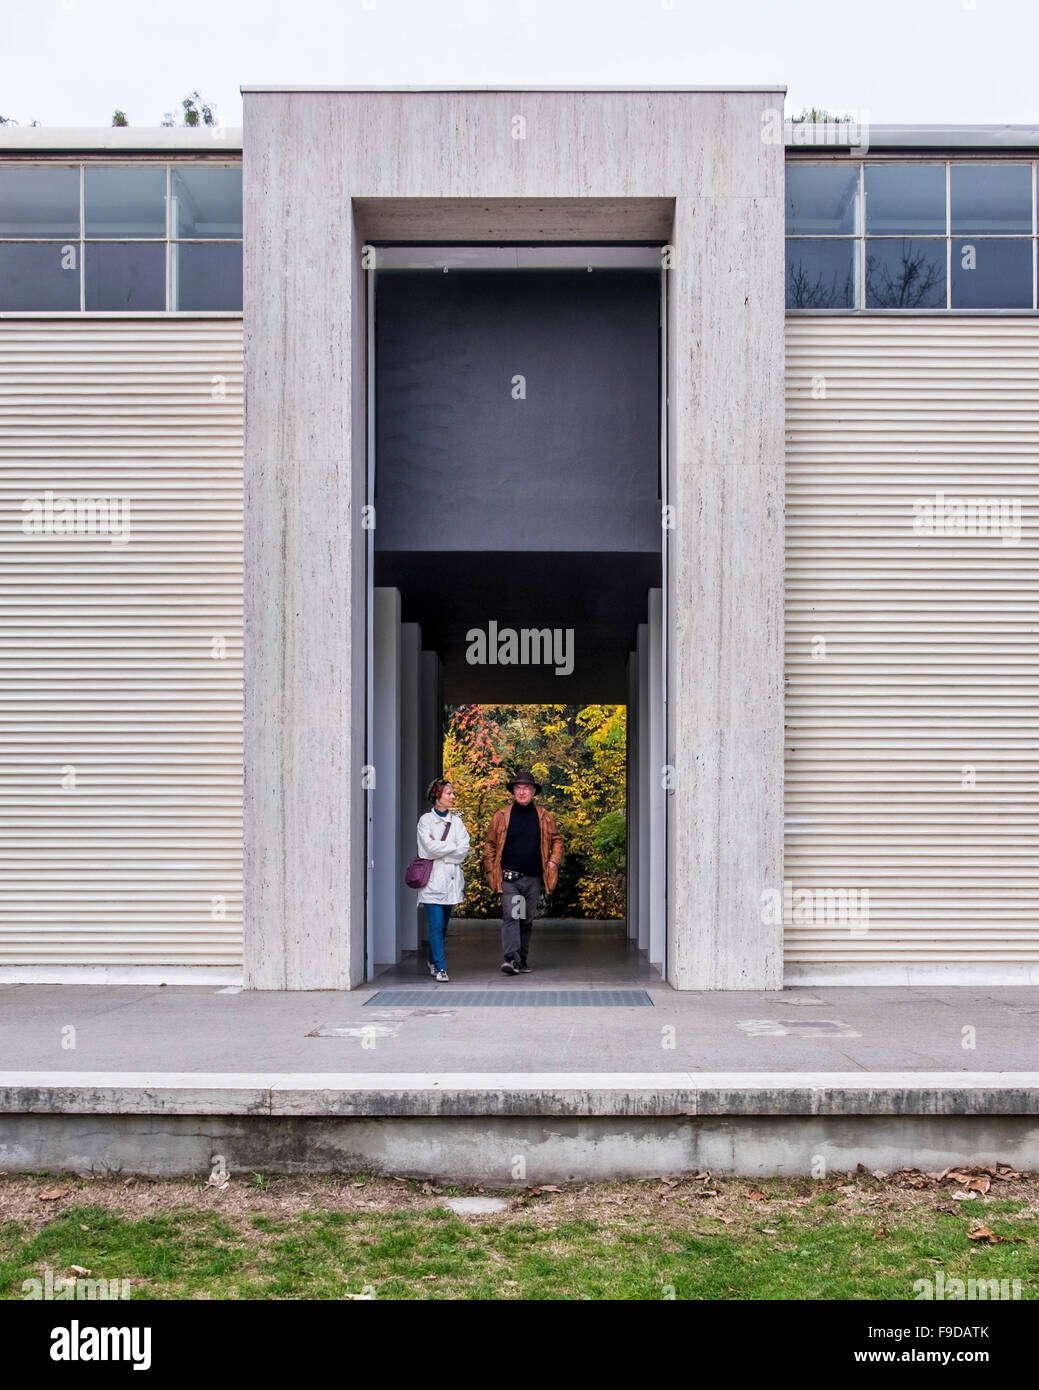 Pavilion entrance at the Giardini section of the 2015 56th Venice Biennale curated by Okwui Enwezor - Stock Image